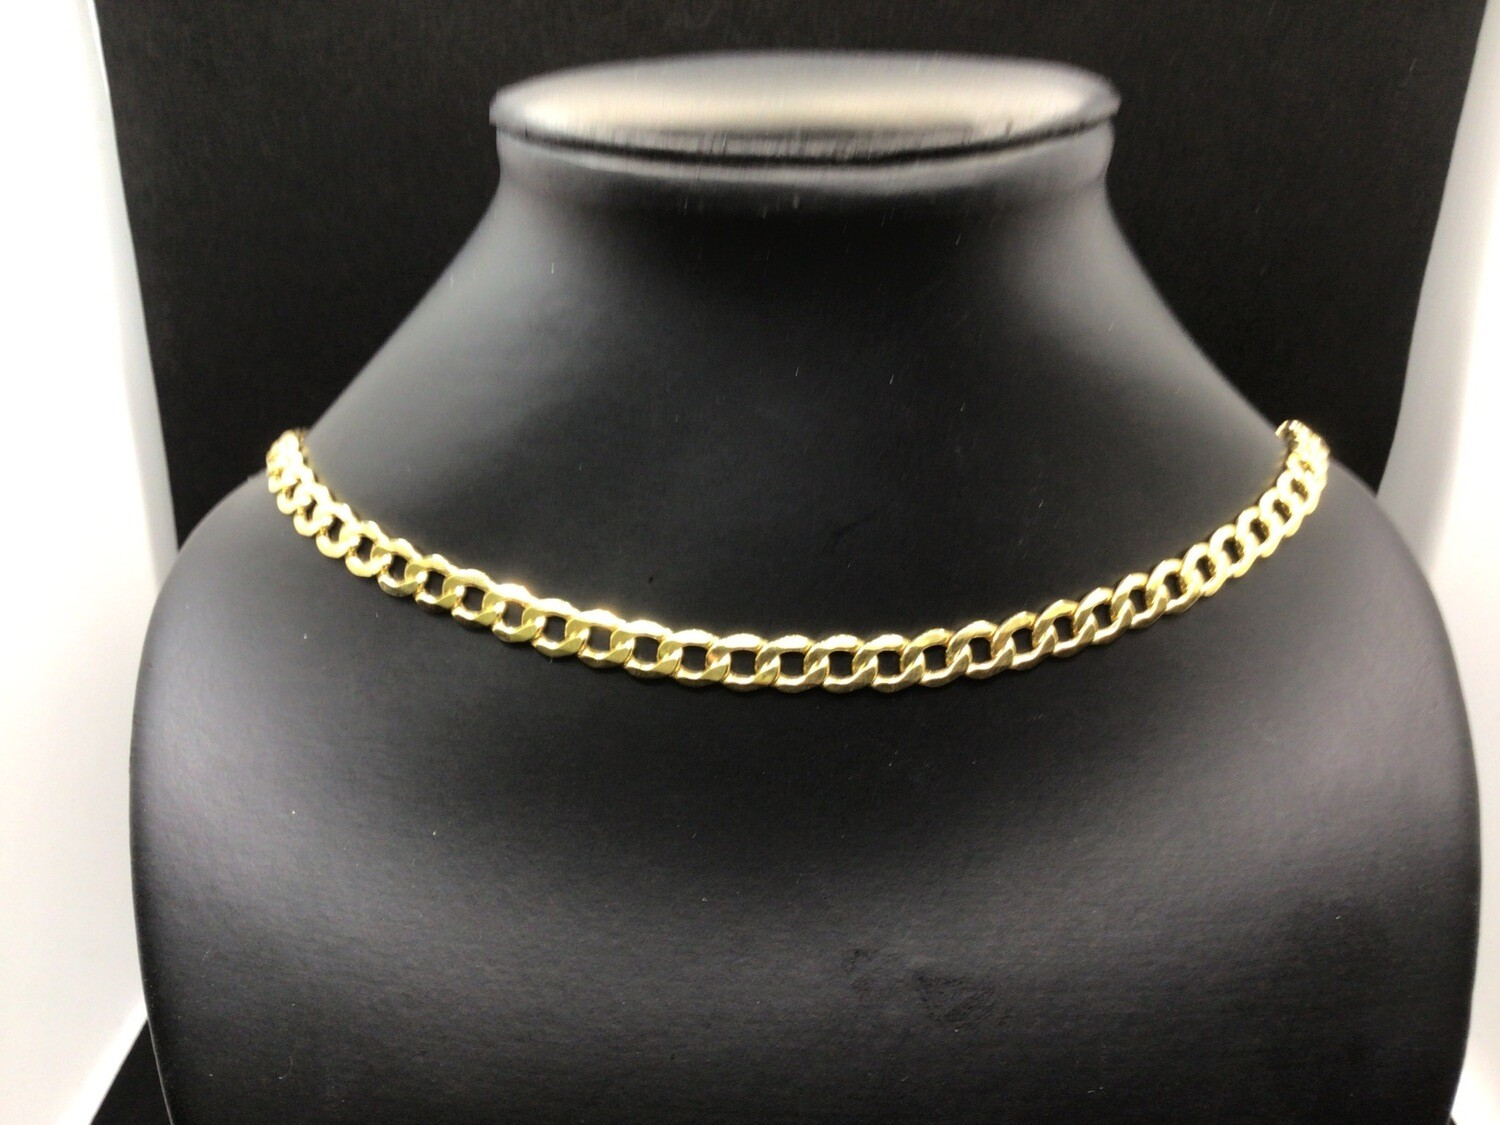 """14 KT. GOLD 20 """" SEMI SOLID CURB. A GREAT LOOK FOR A GREAT PRICE❗️7 MM. WIDE SO IT SHOWS UP NICE. A LOBSTER CLAW FOR SAFETY. ONE OF OUR BEST CHAINS"""